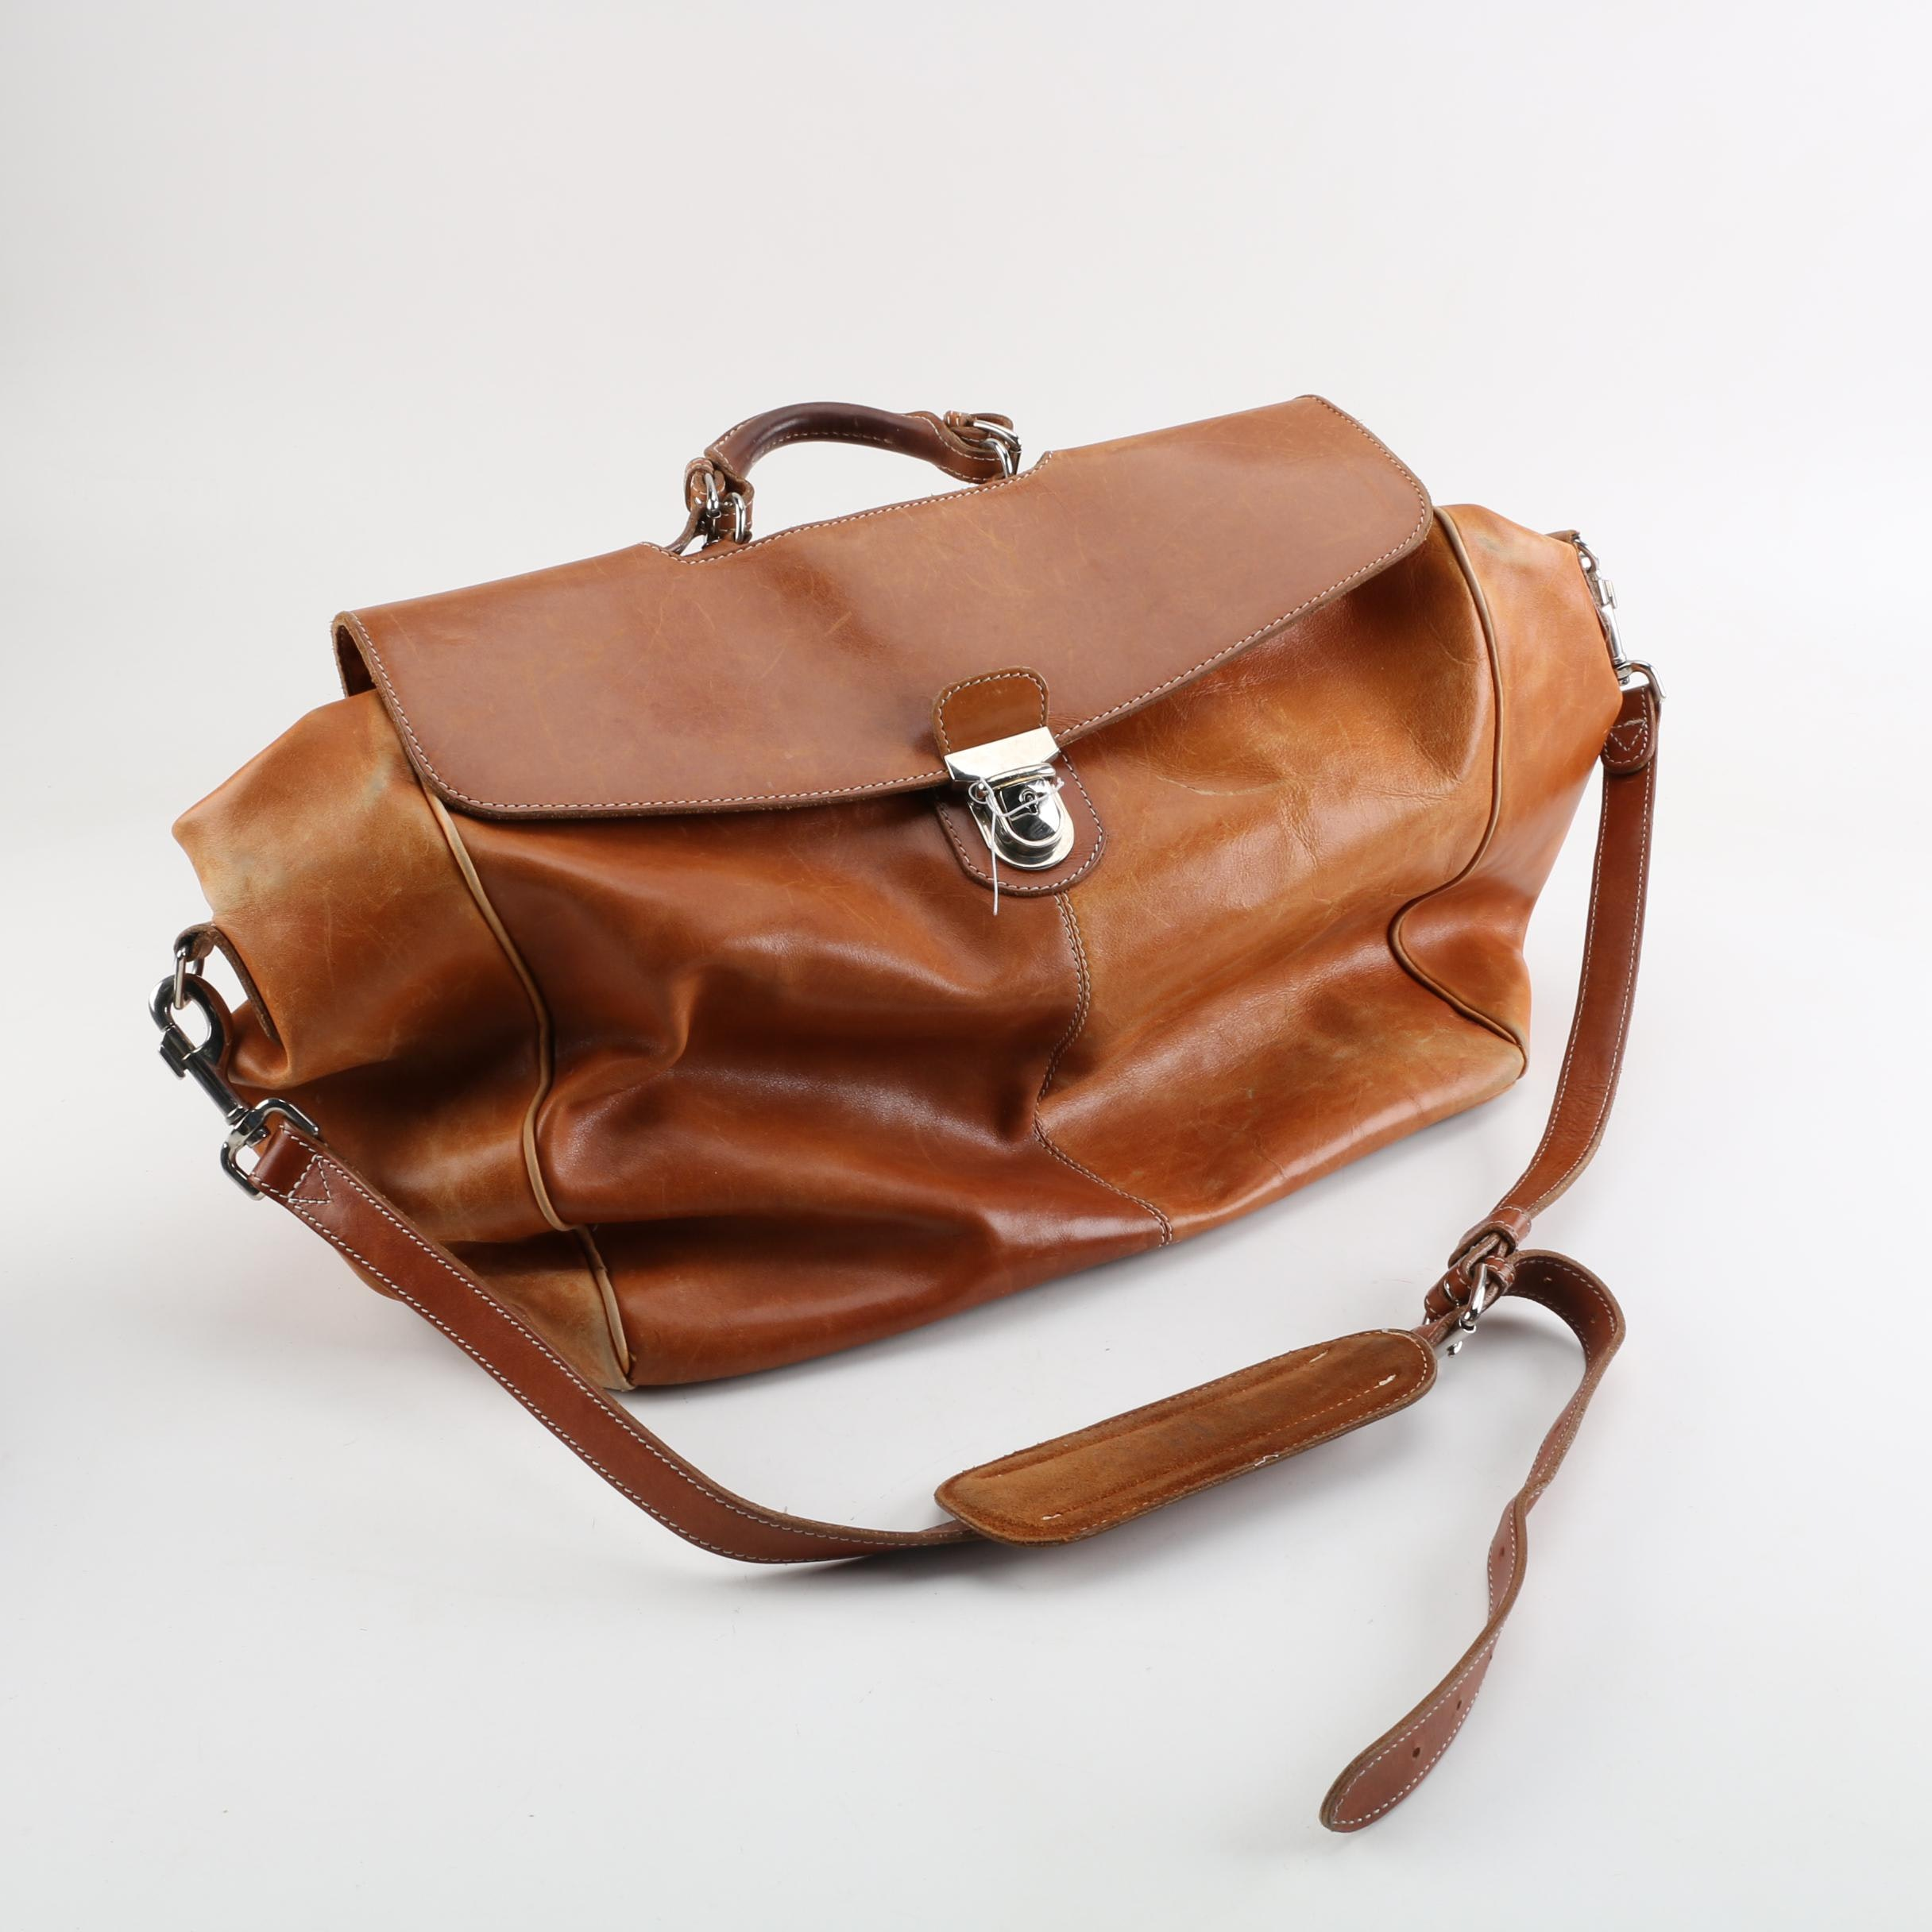 Mulholland Brothers Leather Duffel Bag